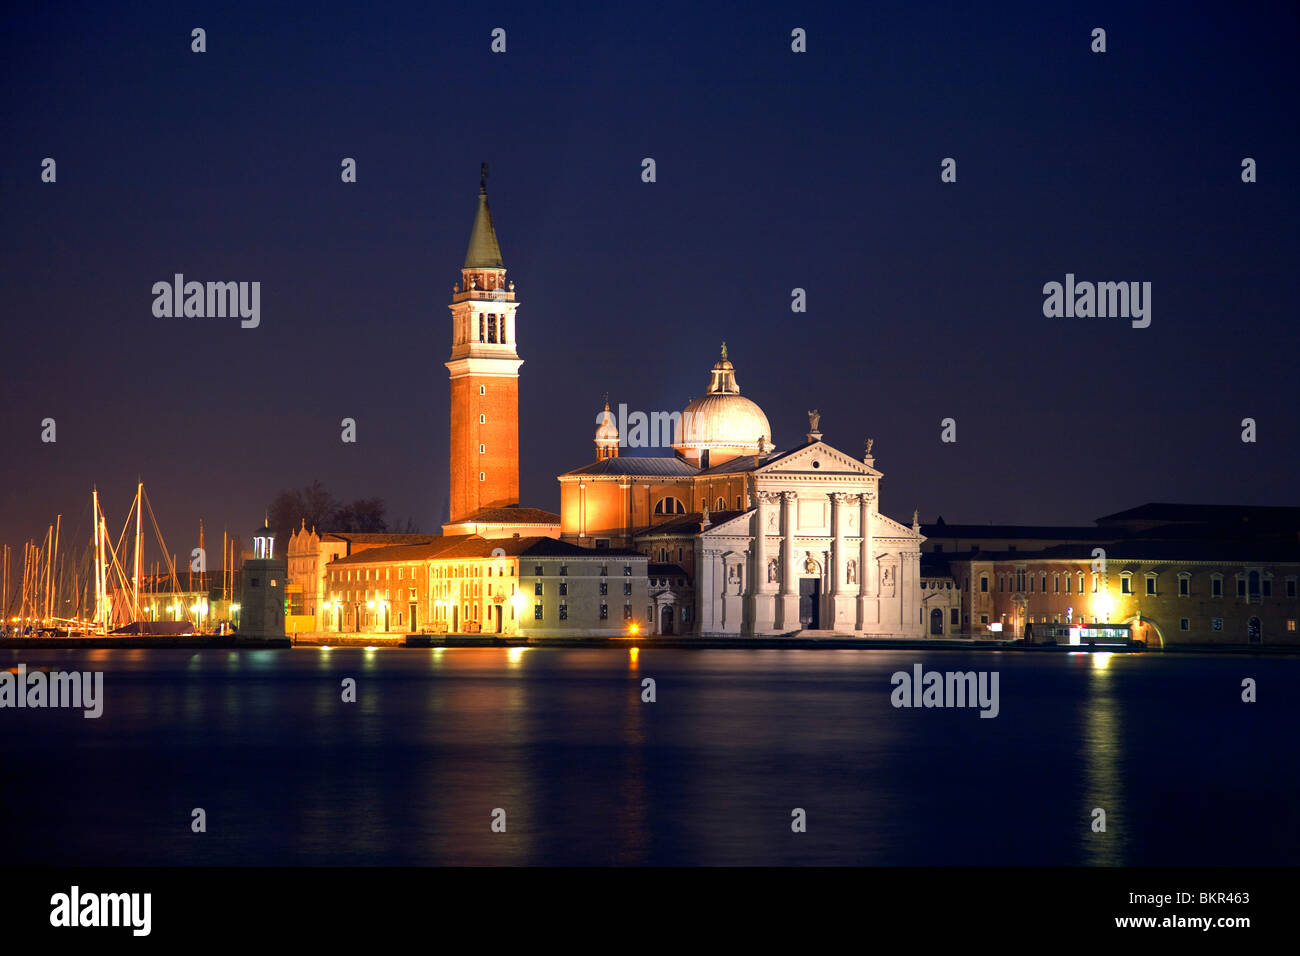 Italy, Veneto, Venice; The Church prominently lit during the night, across the Bacino di San Marco - Stock Image